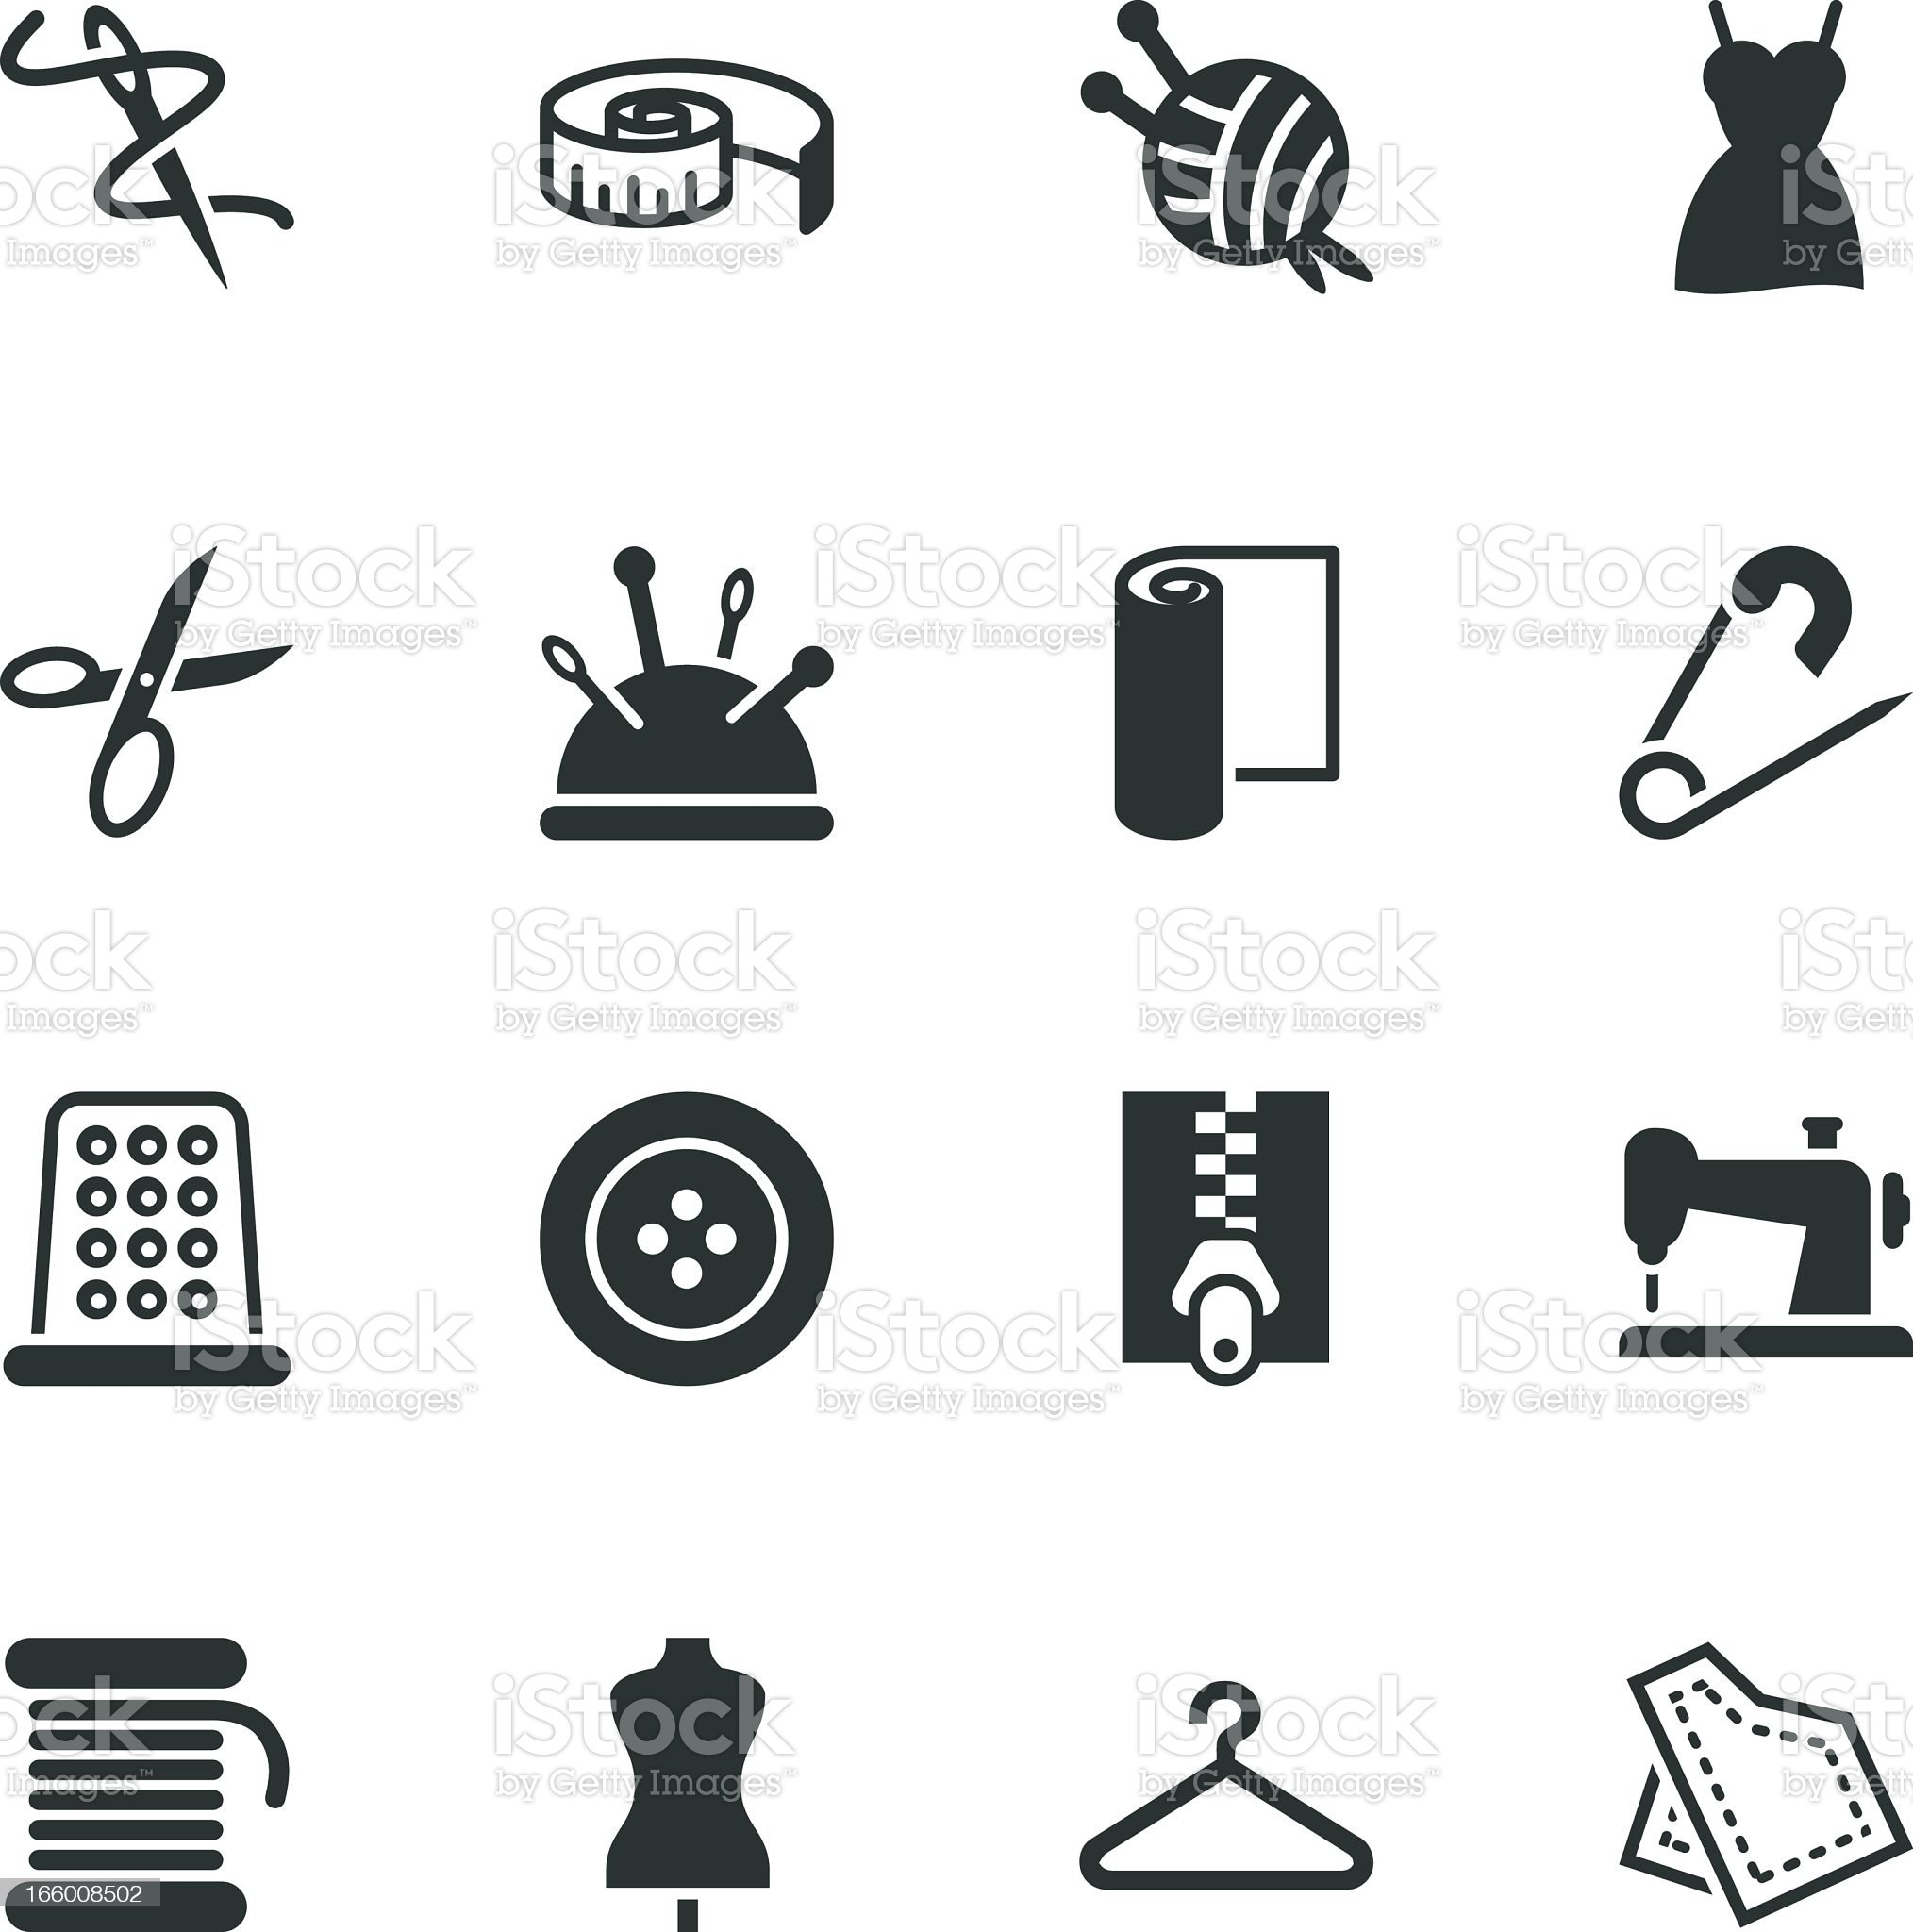 Sewing Silhouette Icons royalty-free stock vector art